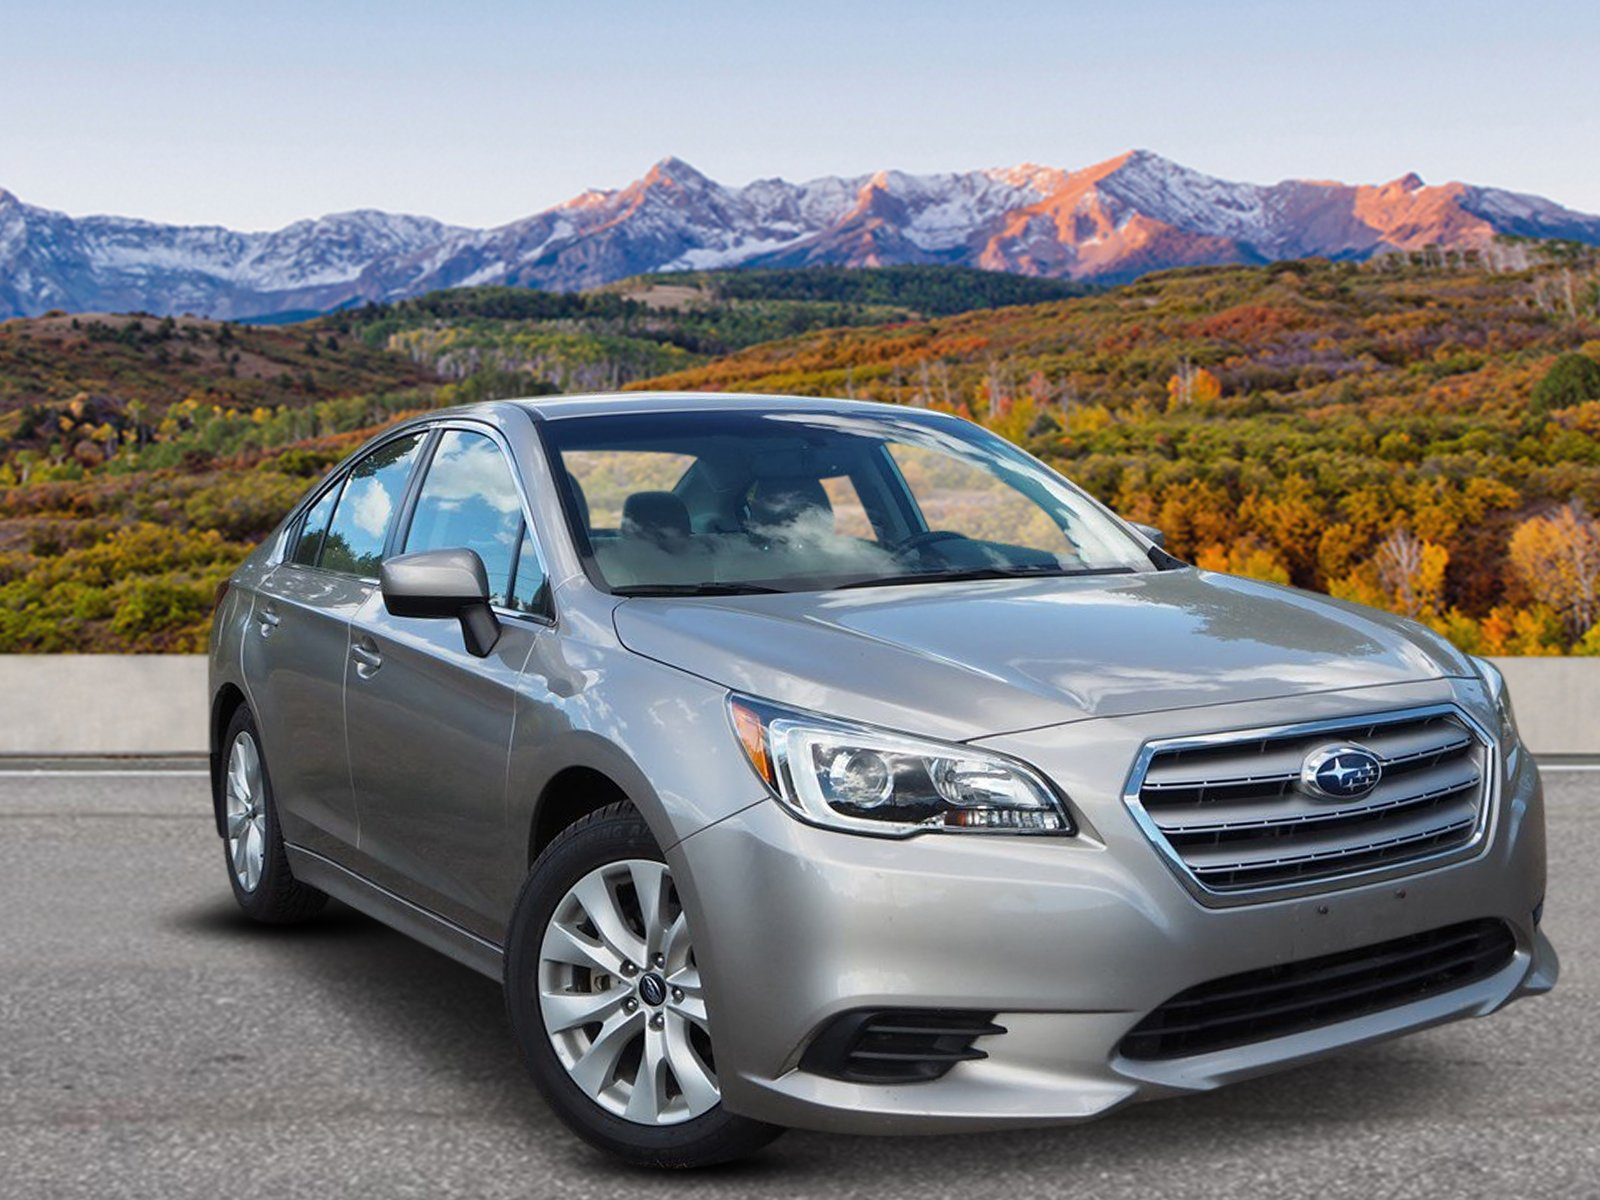 Pre Owned 2016 Subaru Legacy 2 5i Premium 4dr Car in Colorado